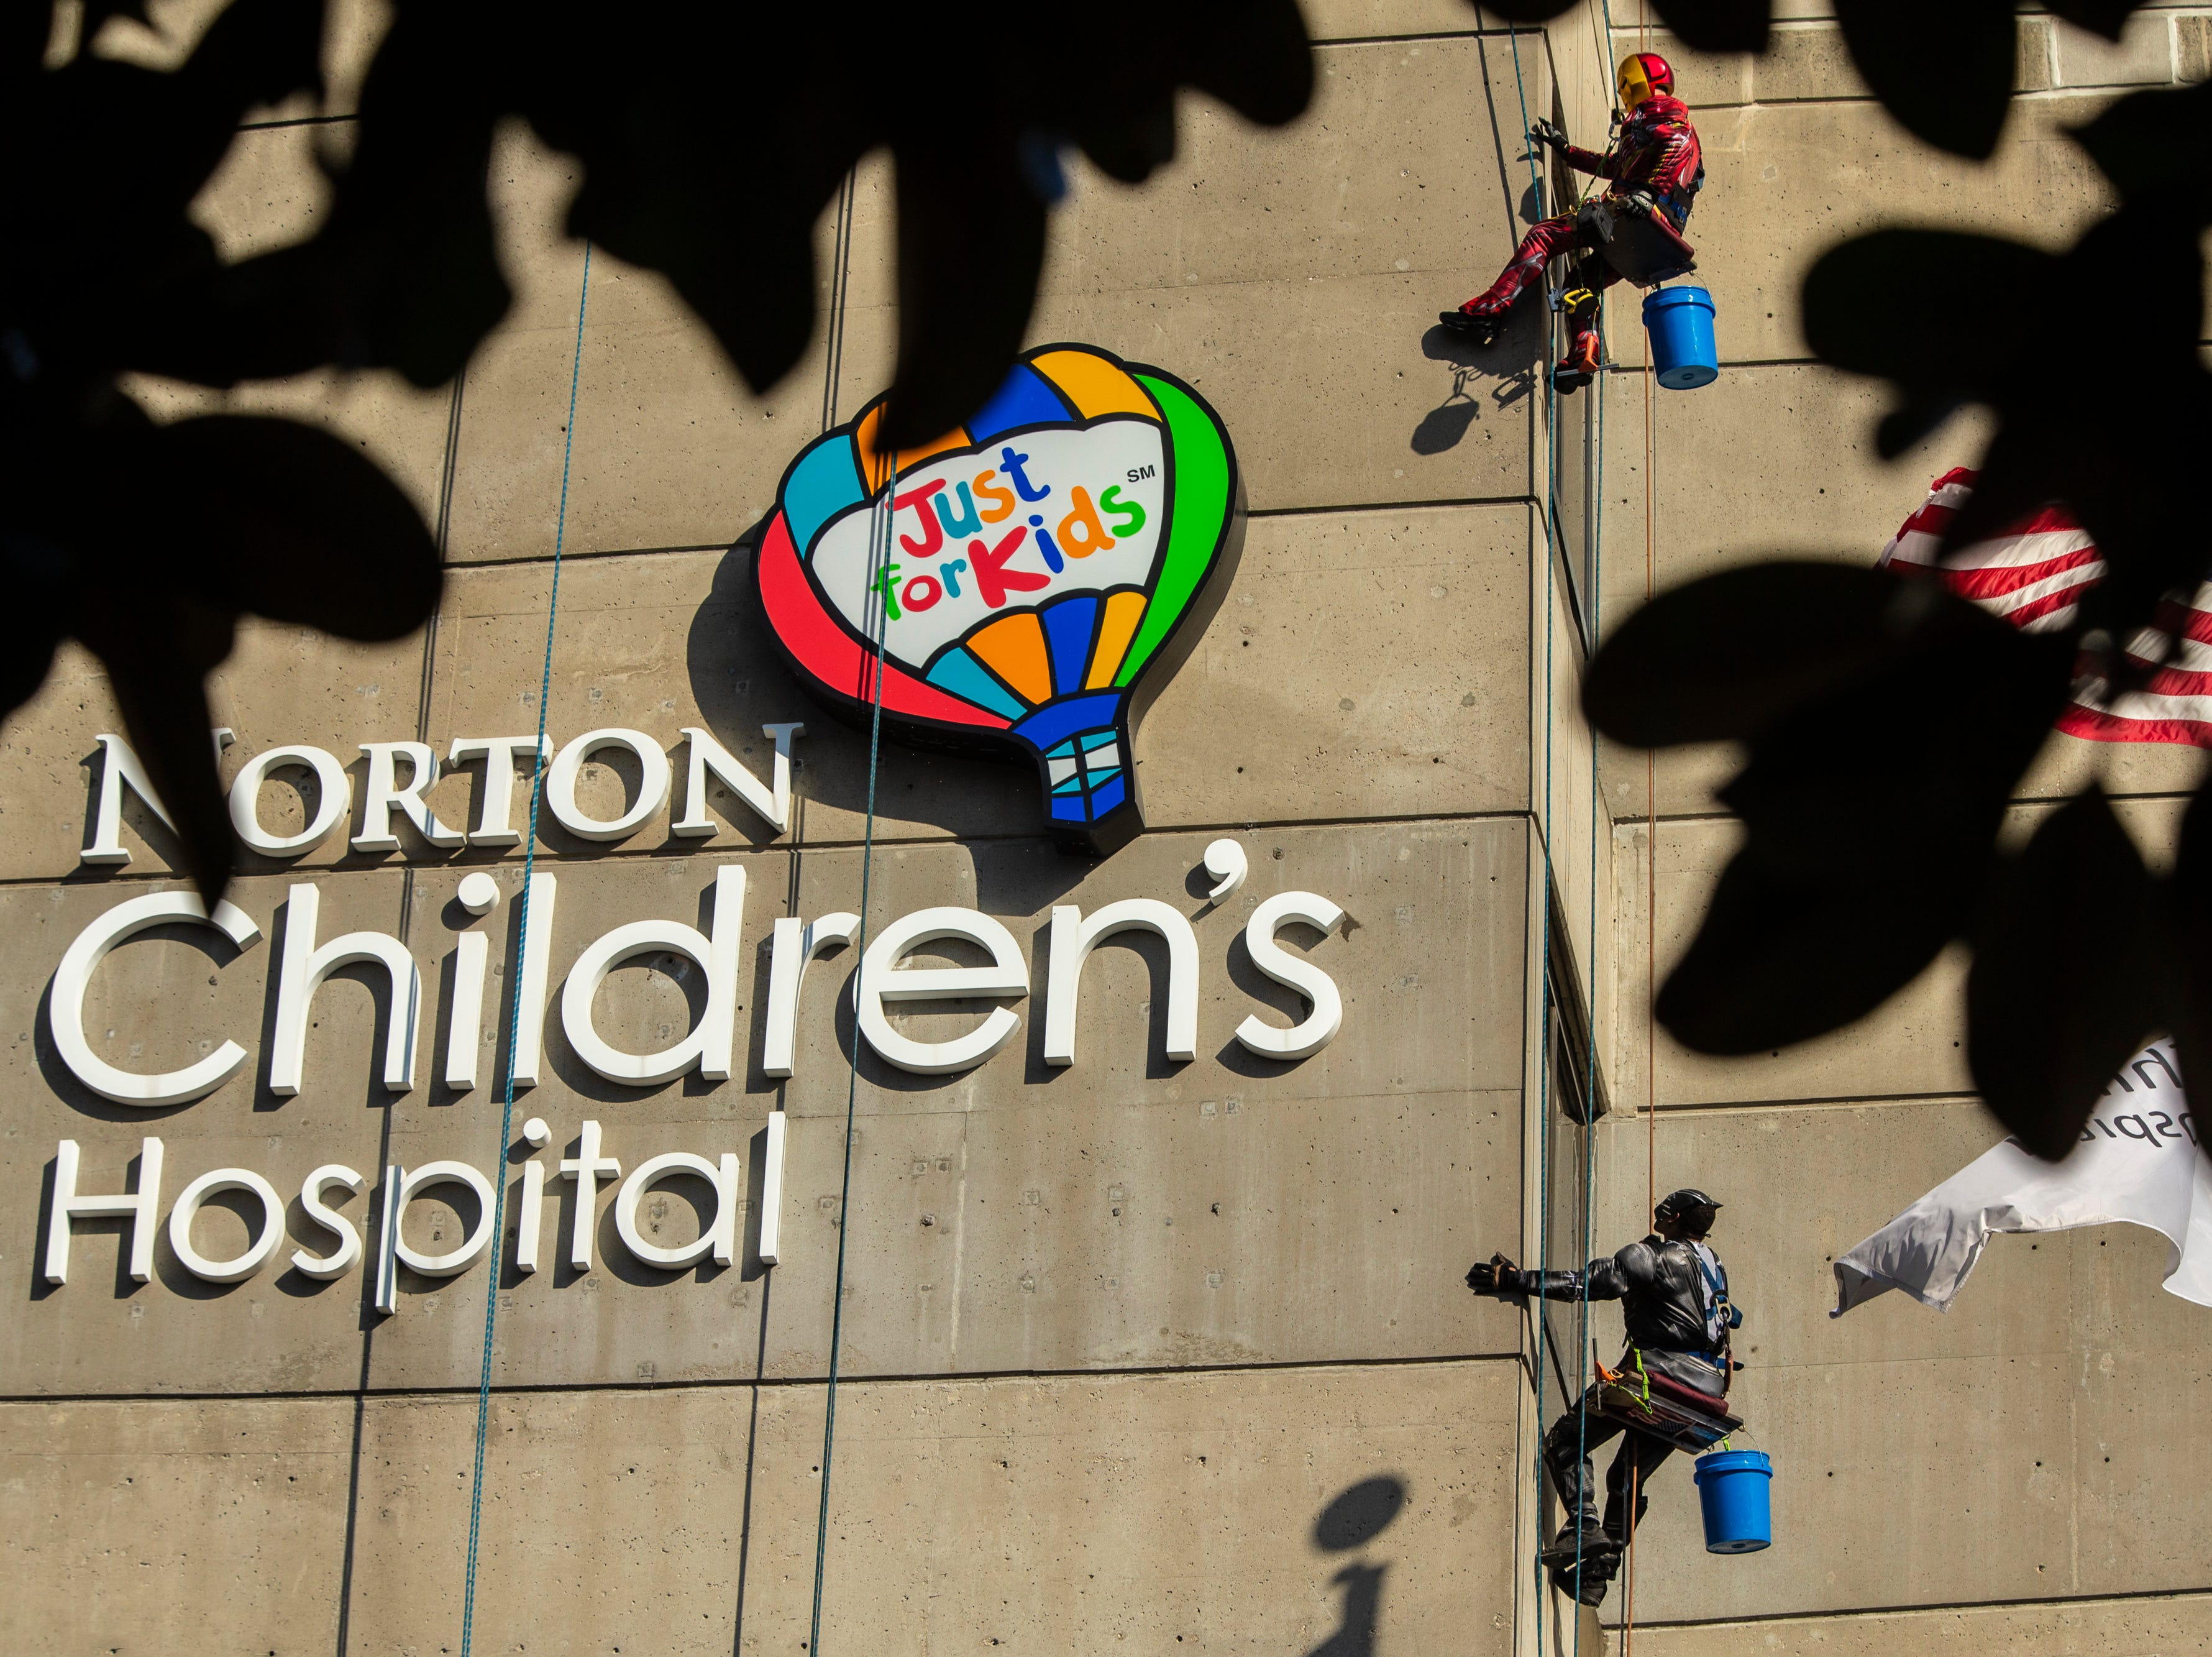 Joe Haist, top, and Lionel Bass, with Pro Clean International, wear super hero costumes while cleaning the windows at Norton Children's Hospital on Thursday. Feb. 21, 2019